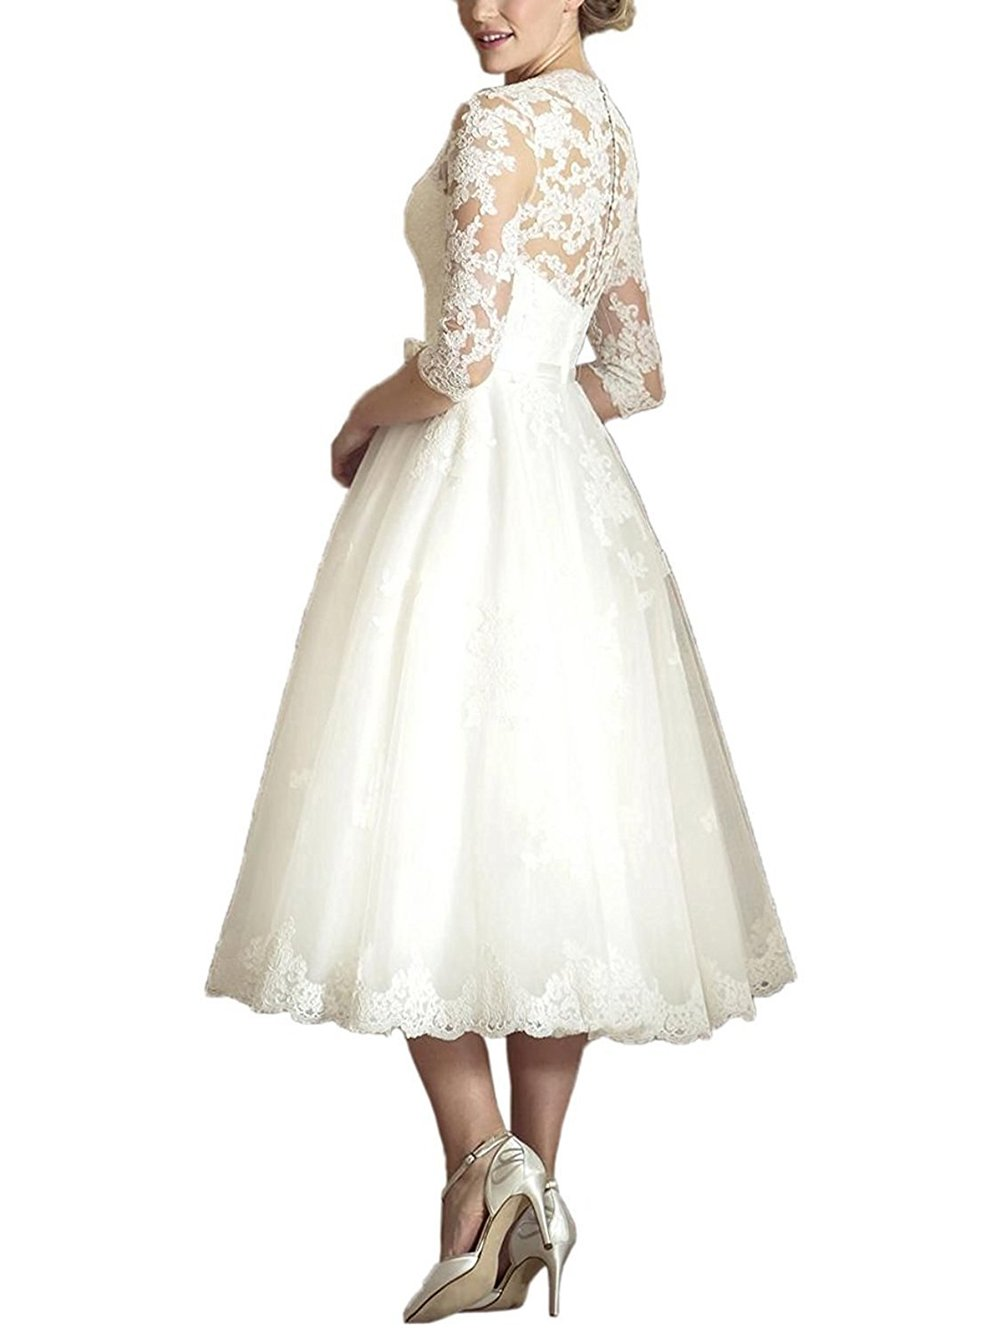 Dressyu Vintage Tea Length V Neck 3/4 Sleeve Wedding Dresses with Lace Appliques at Amazon Womens Clothing store: